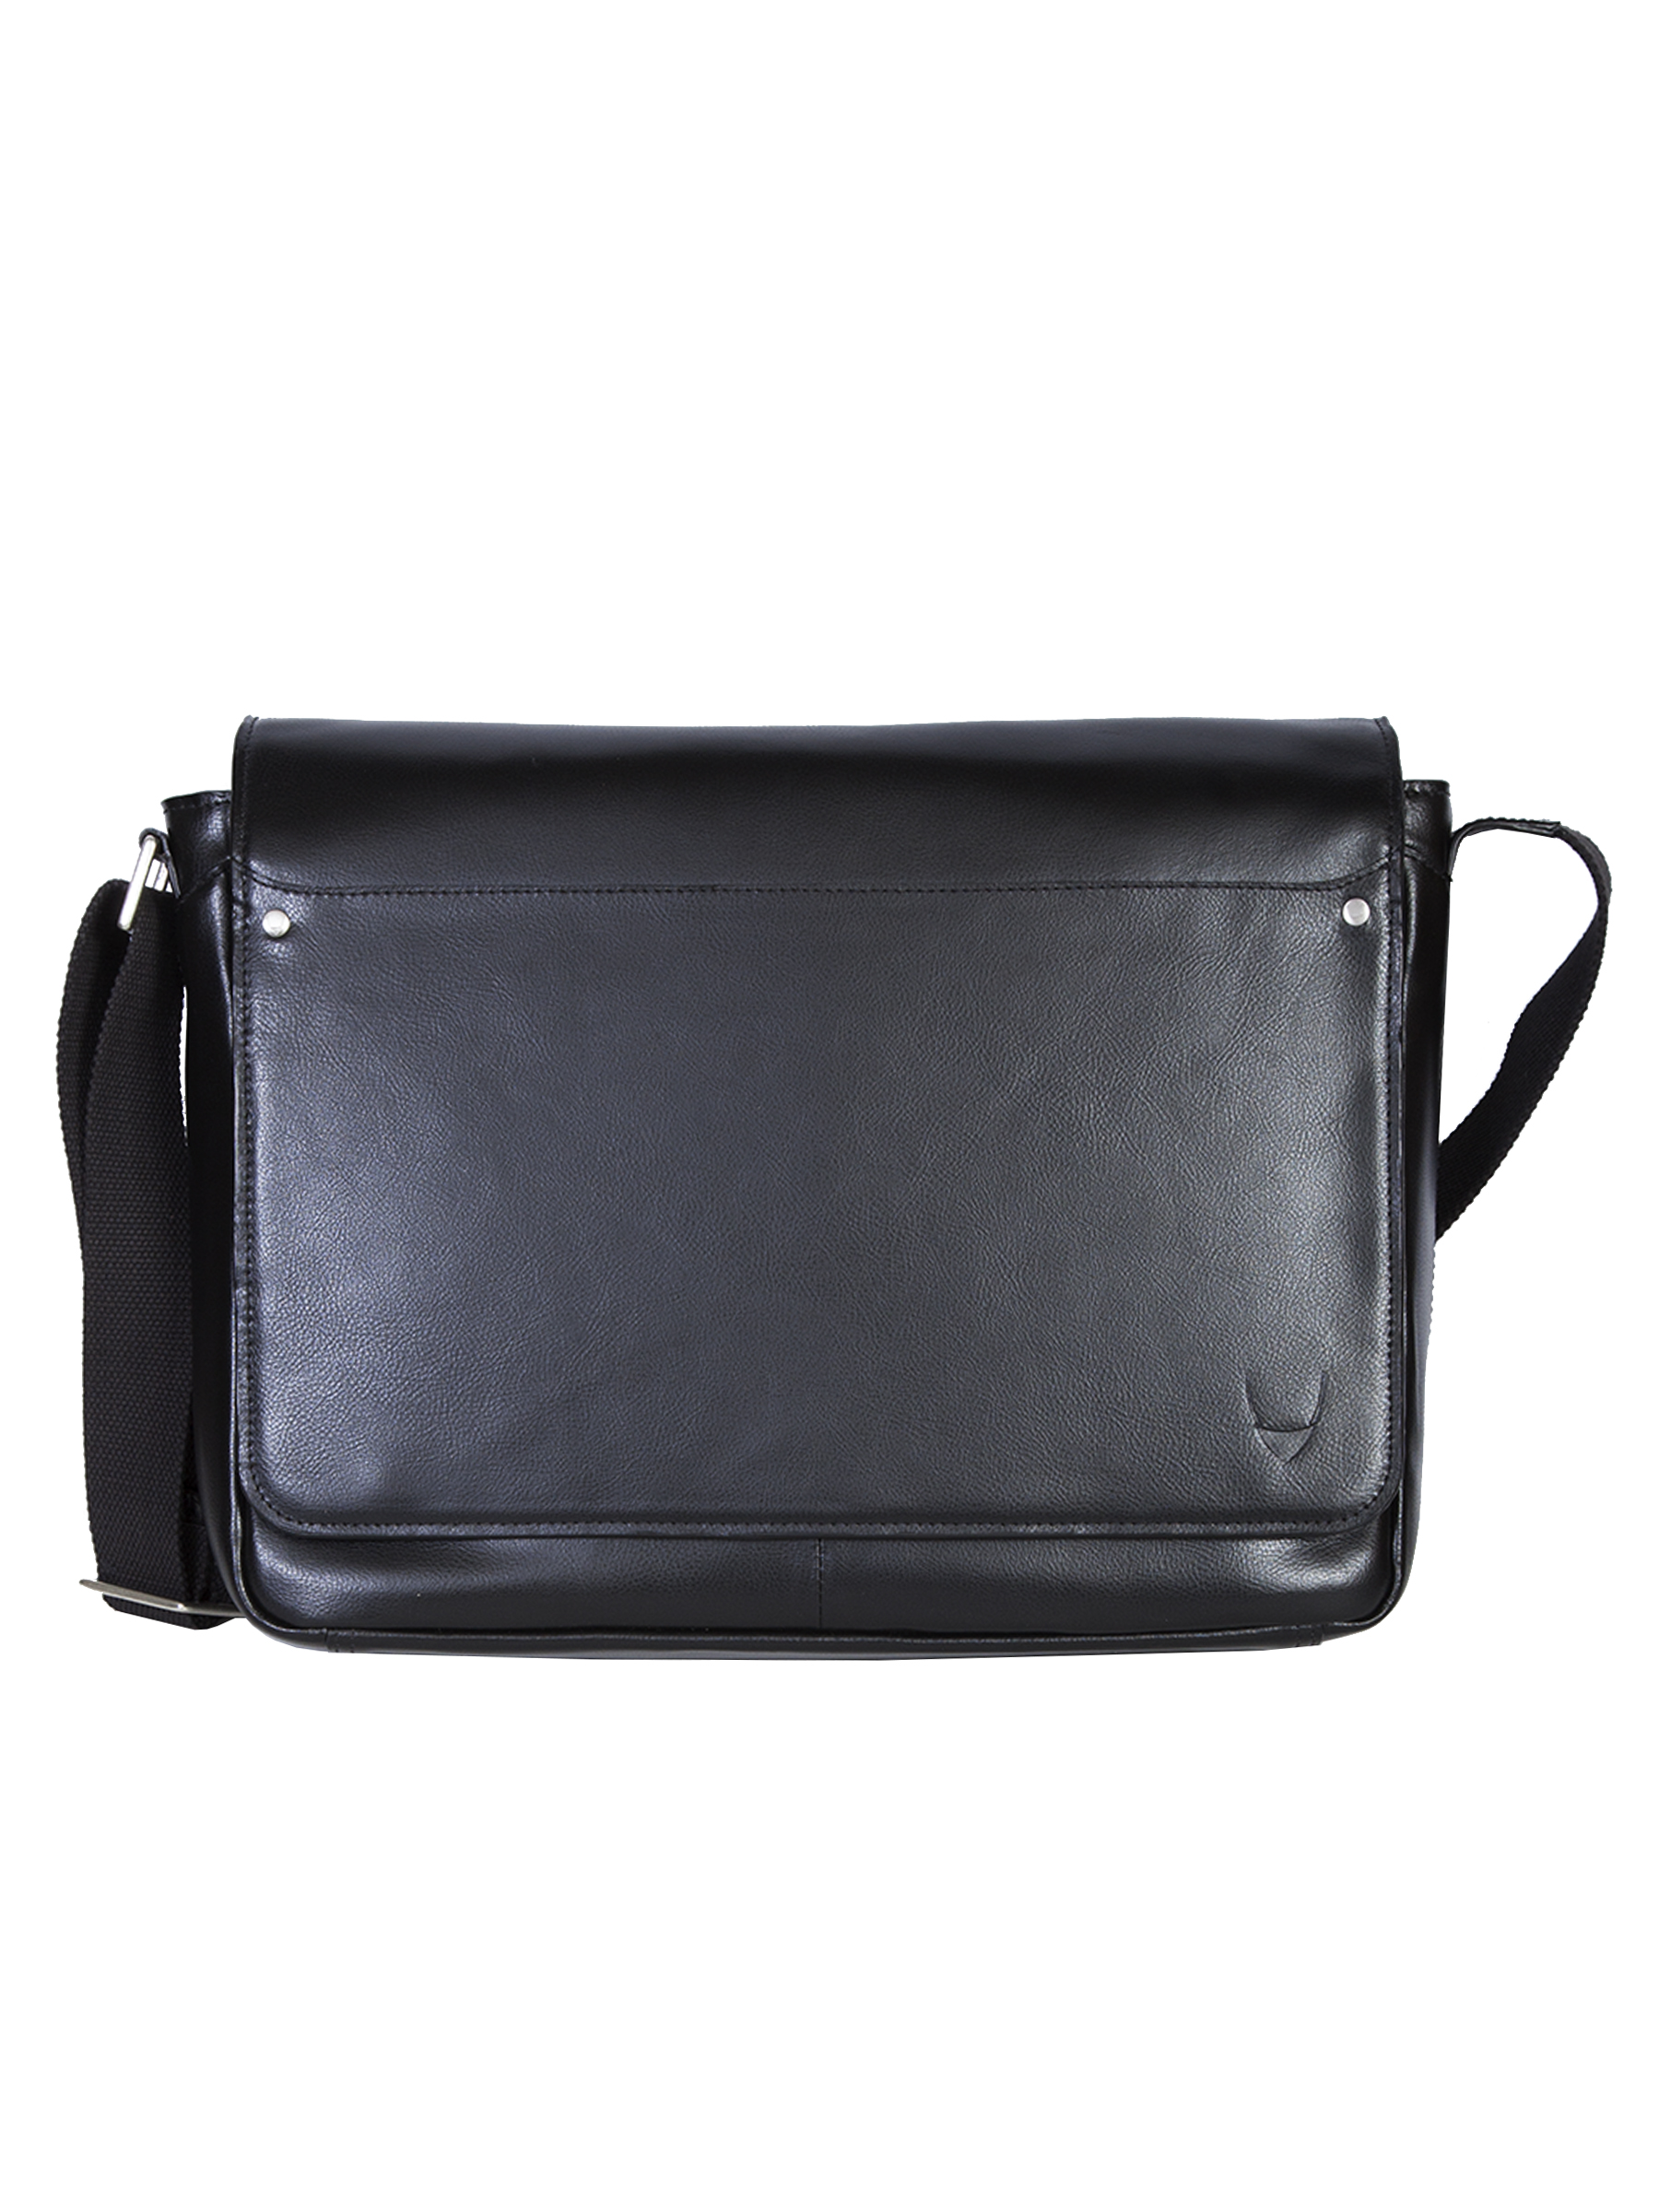 Corporate leather messenger bag